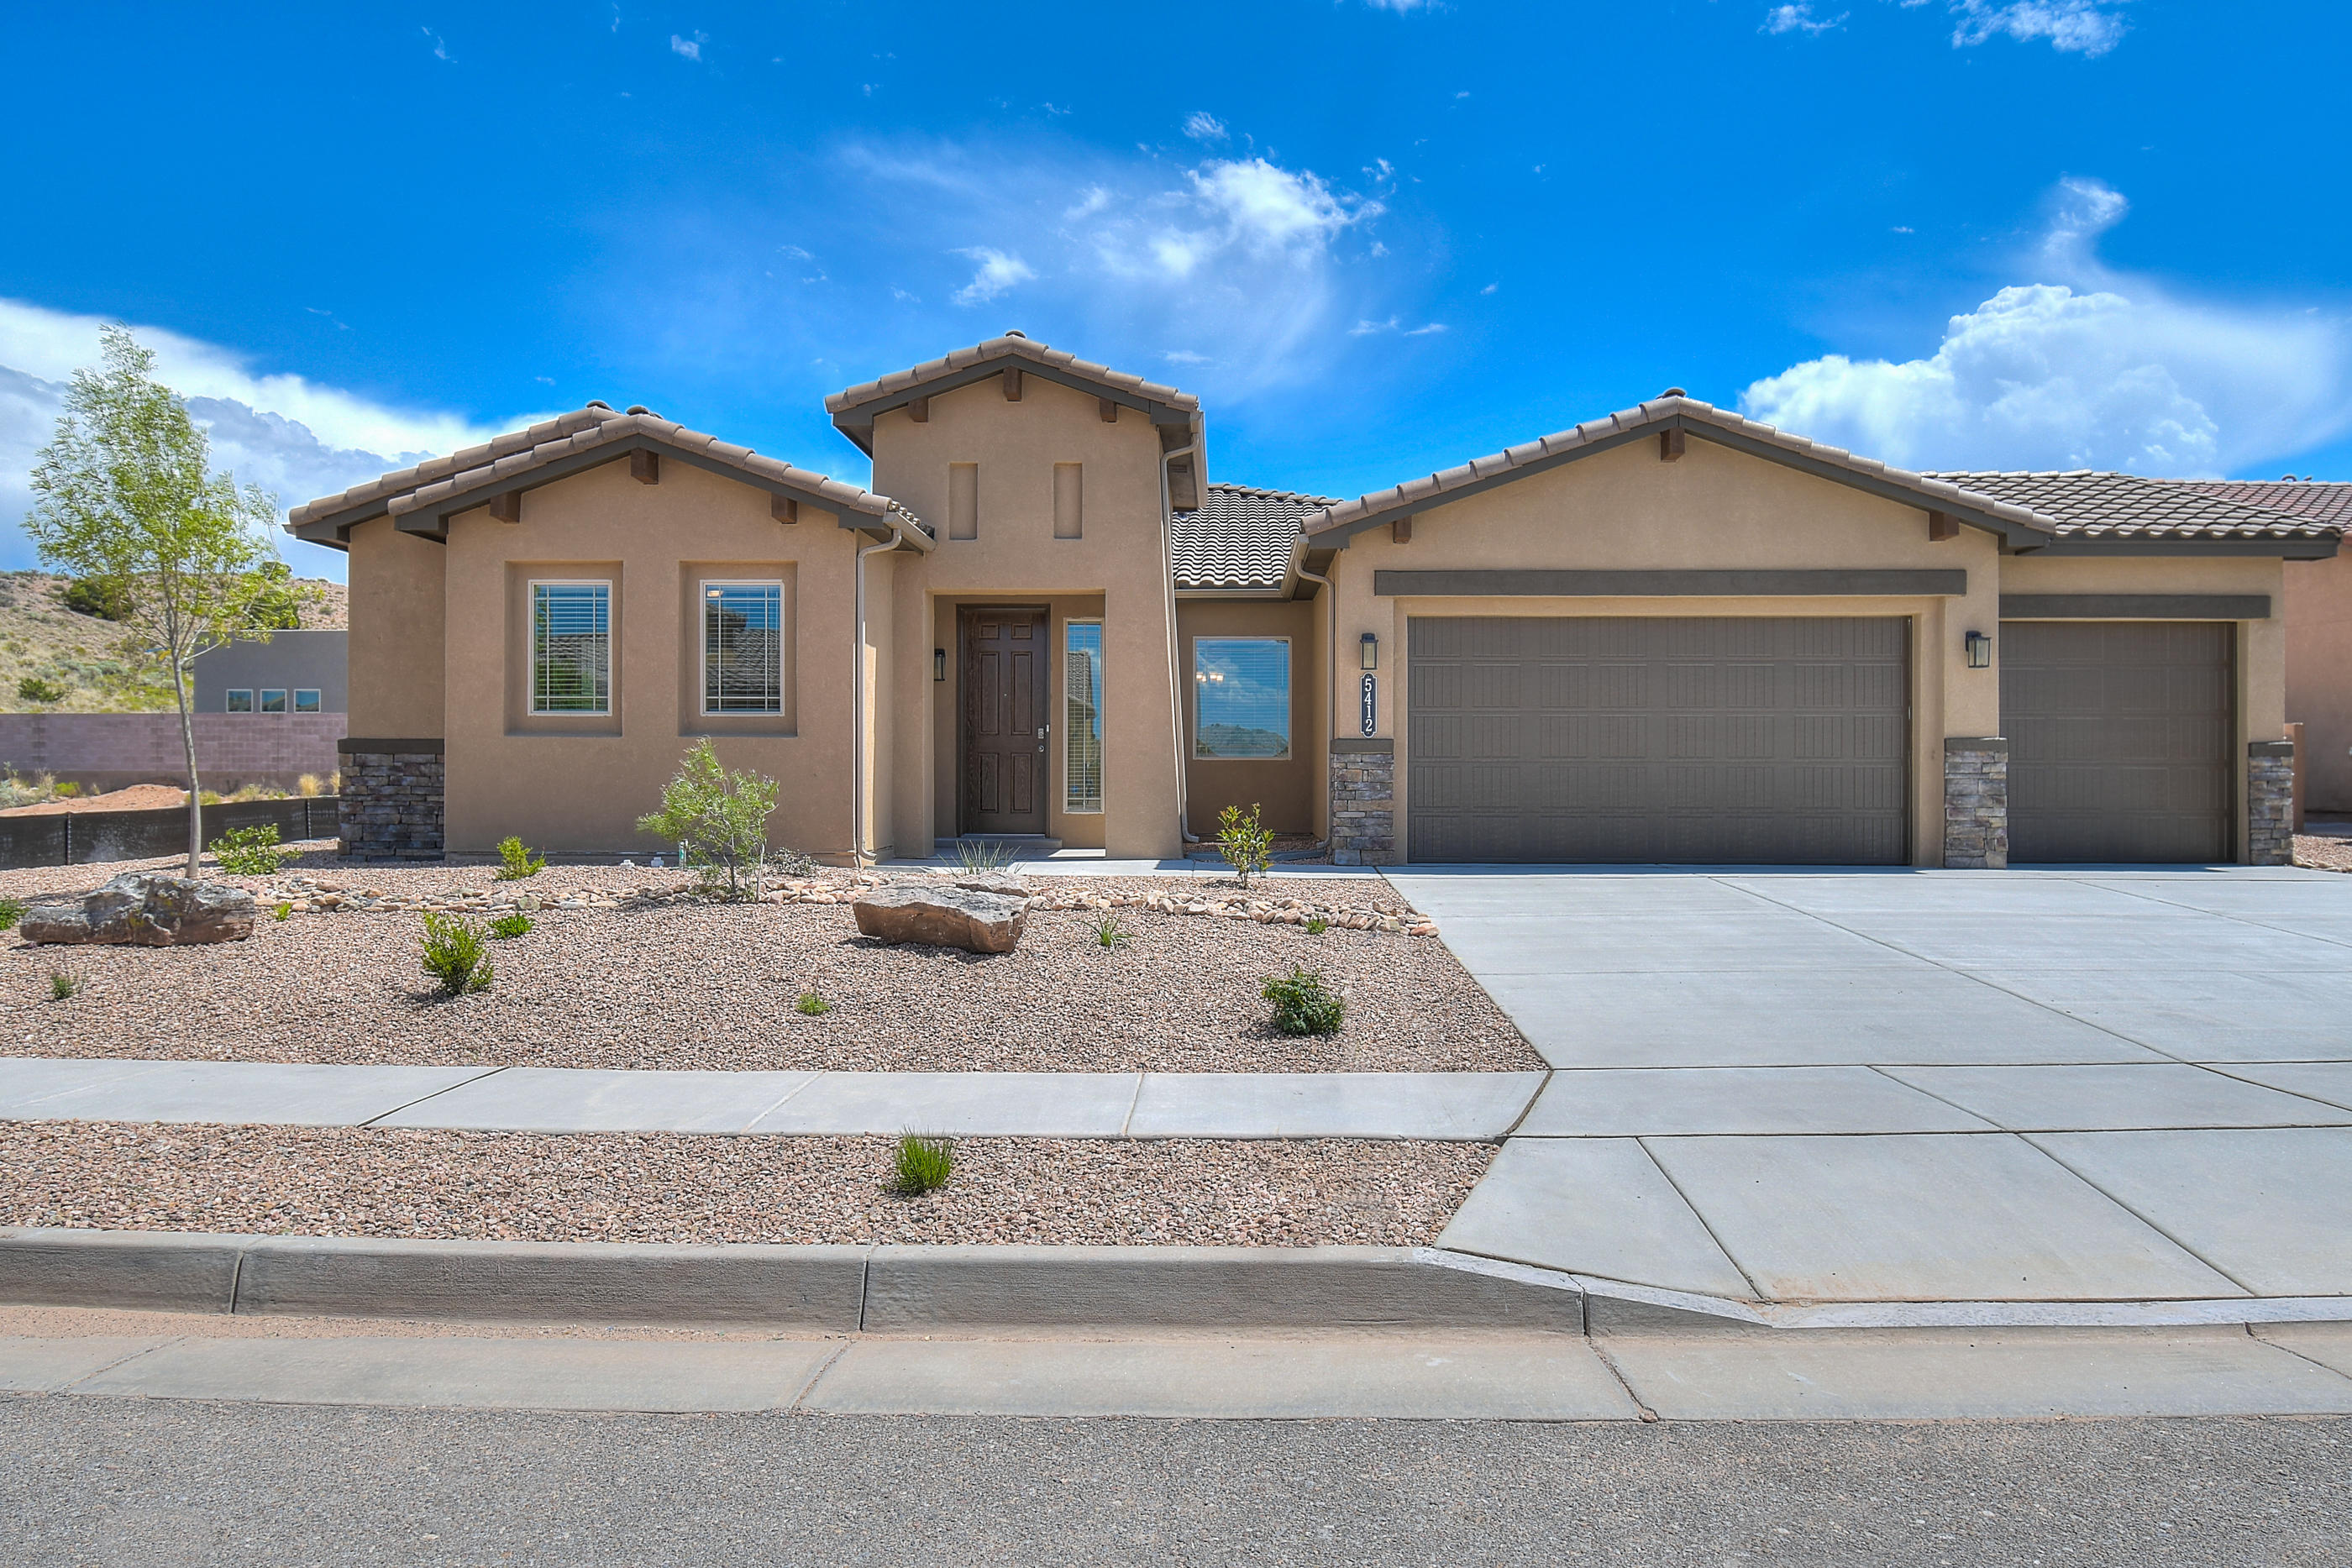 6532 KIMMICK Drive NW Property Photo - Albuquerque, NM real estate listing